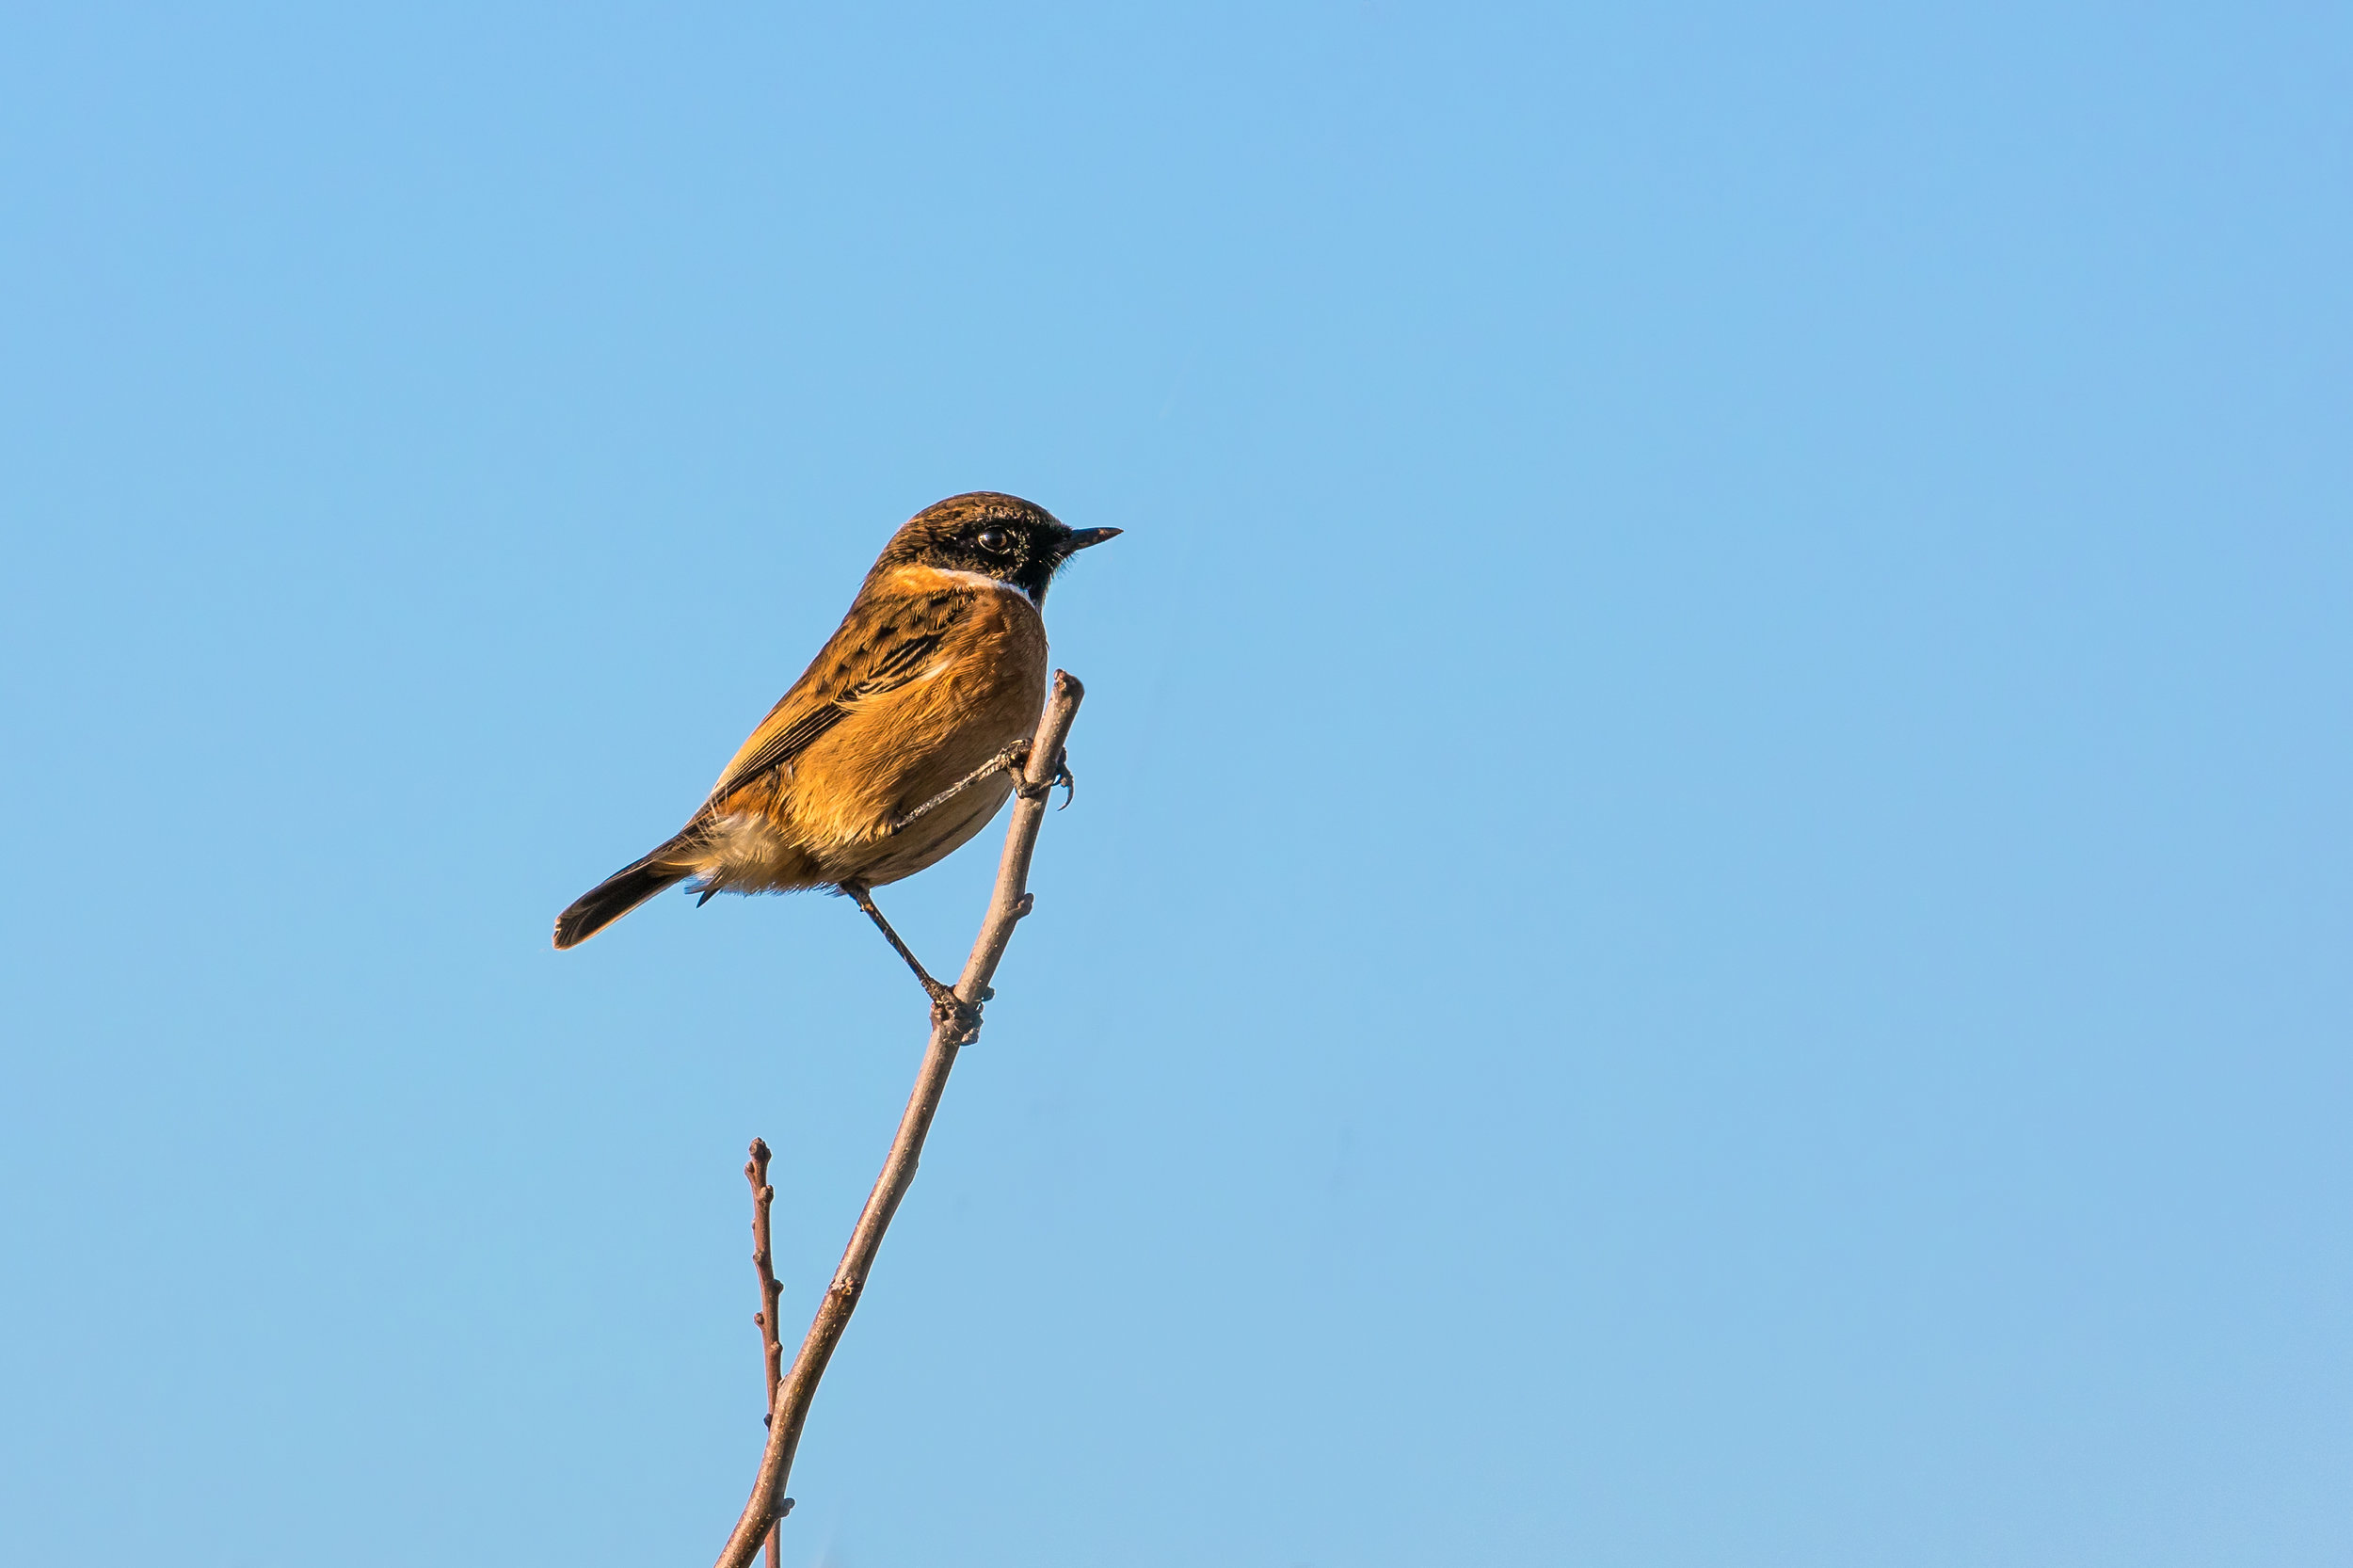 Male Stonechat portrait #2